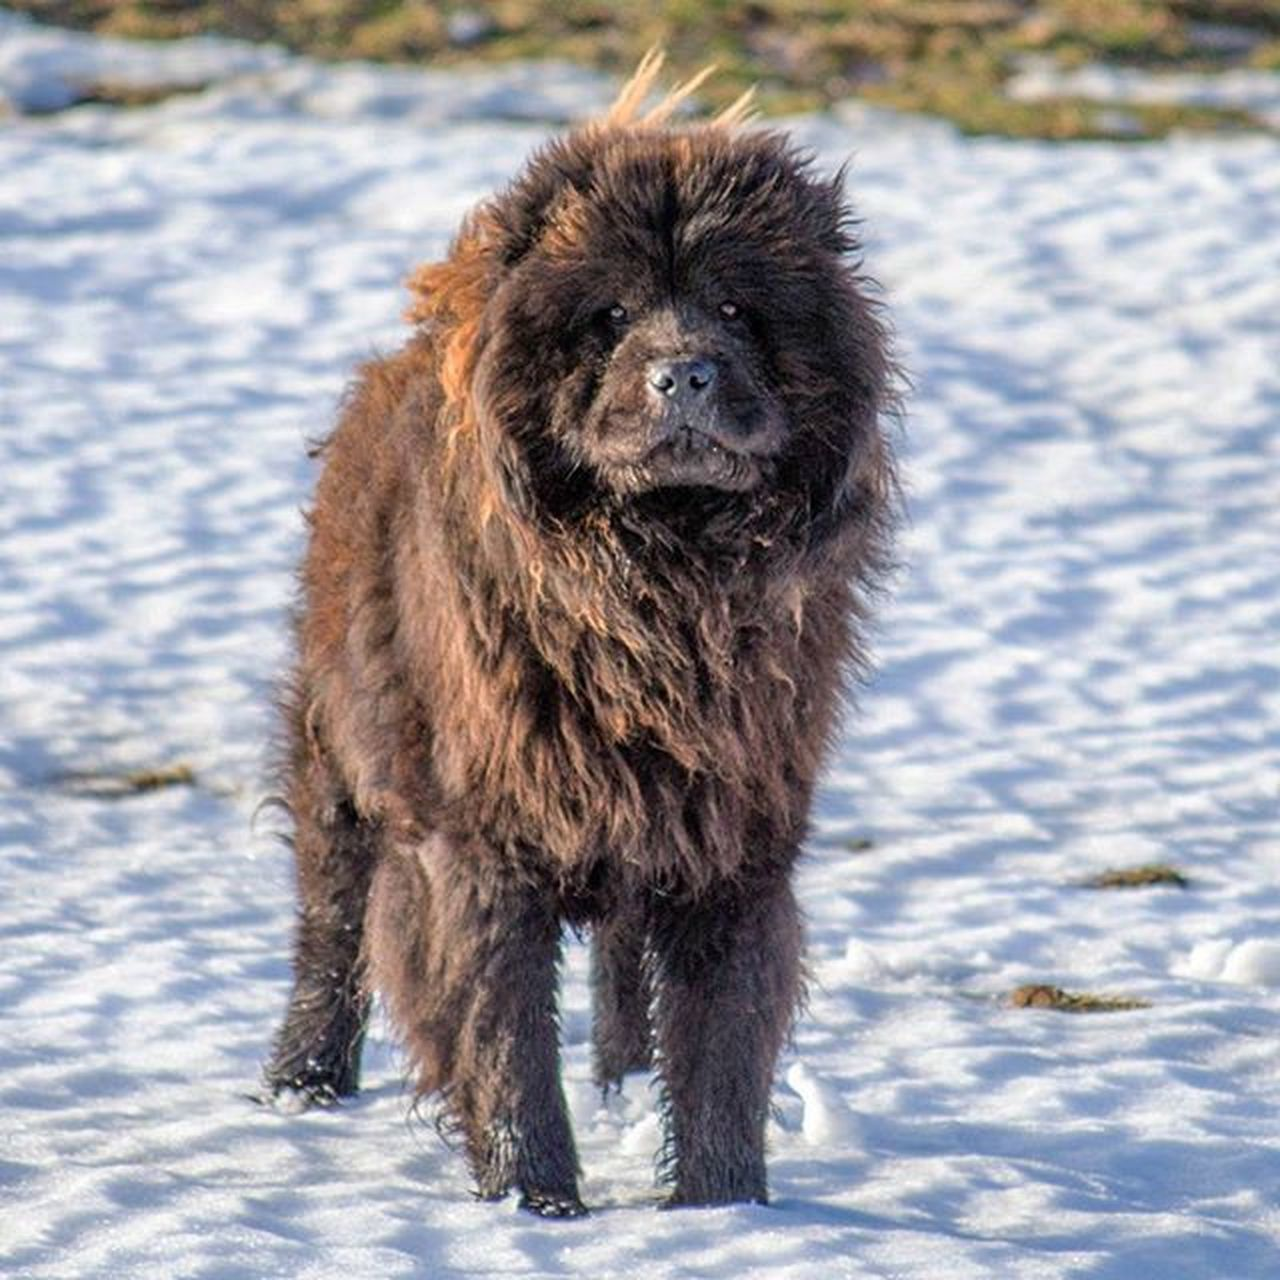 KING KONG ChowChow Dog Dog Puppy Pup Cute Eyes Instagood Dogs_of_instagram Pet Pets Animal Animals Petstagram Petsagram Dogsitting Photooftheday Dogsofinstagram Ilovemydog Instagramdogs Nature Dogstagram Dogoftheday Lovedogs Lovepuppies hound adorable doglover instapuppy instadog